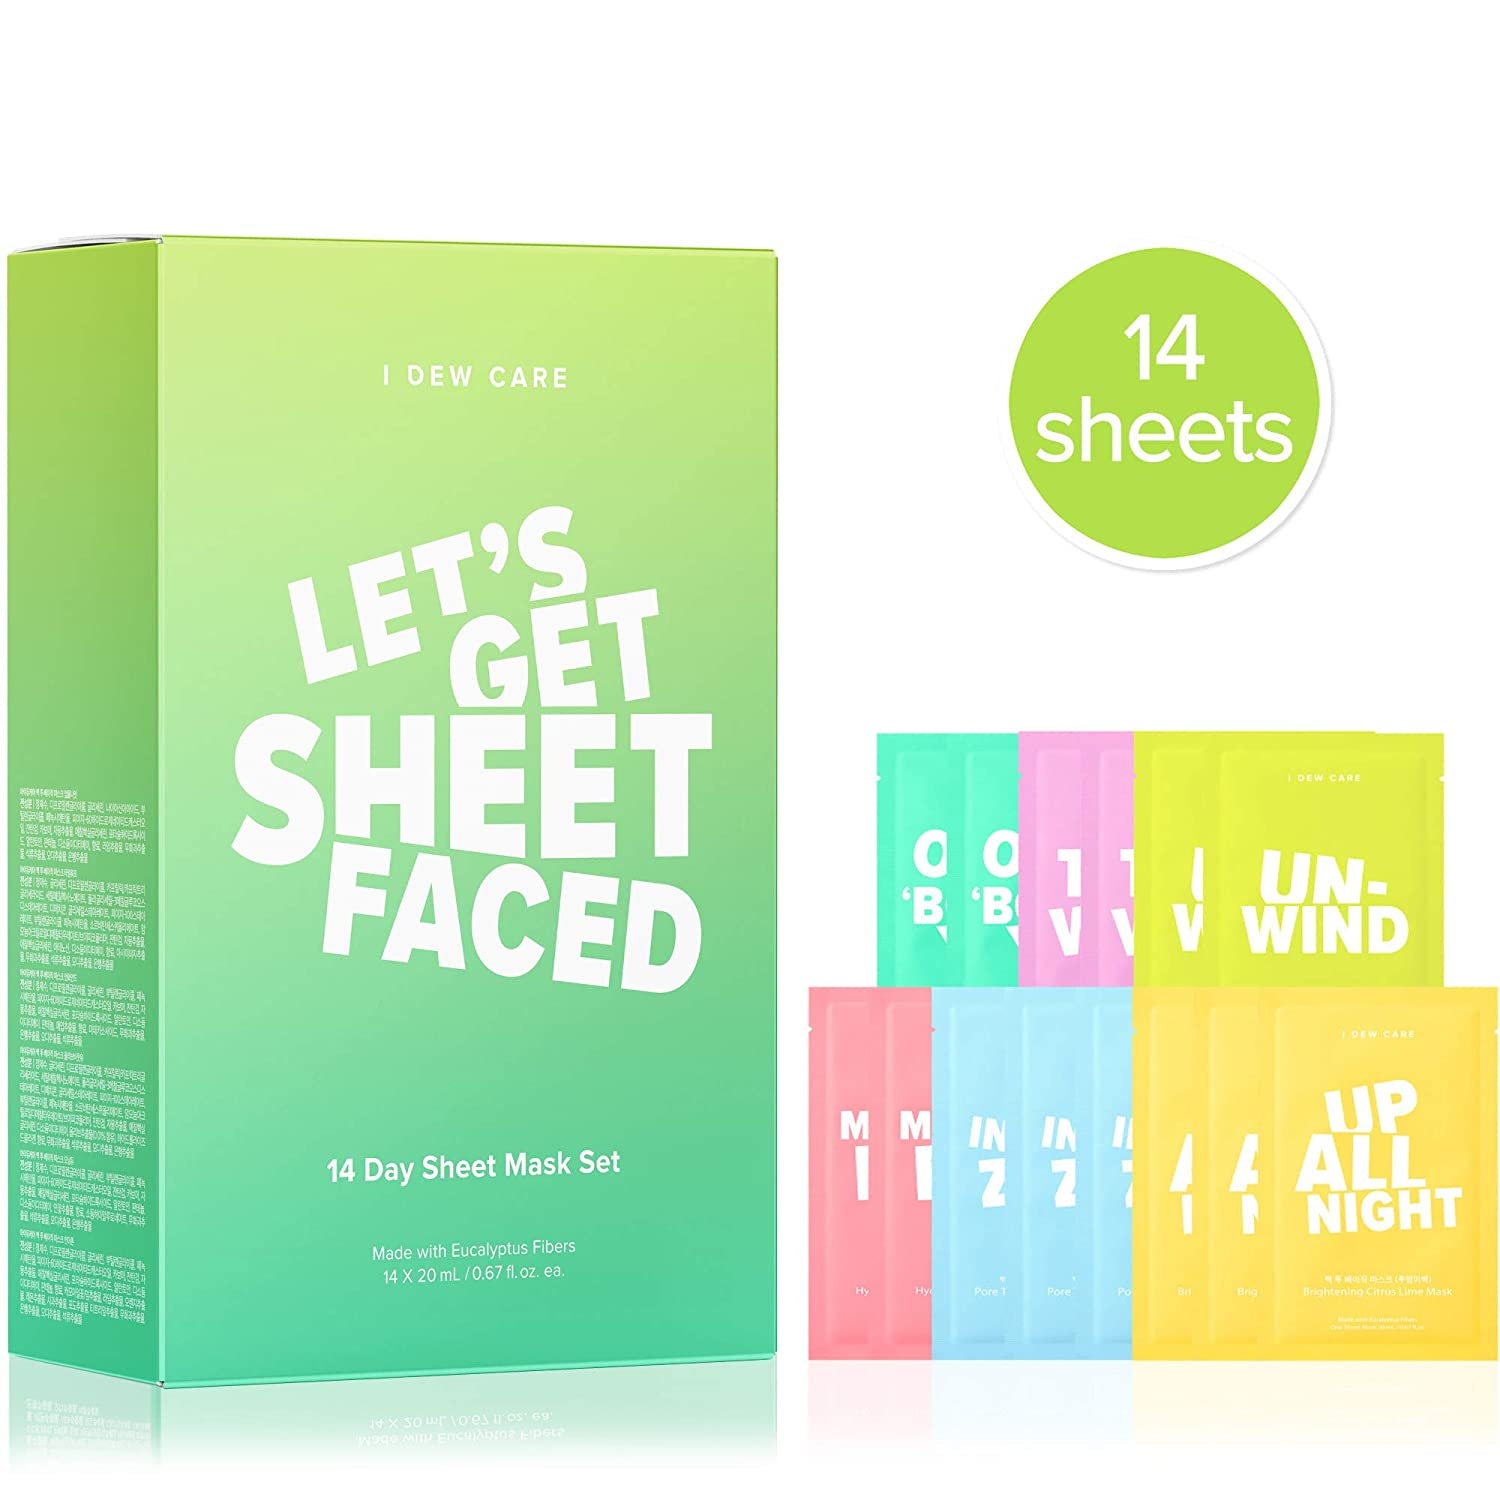 I DEW CARE Let's Get Sheet Faced Face Mask Pack | Set of 14 Sheet Masks | Korean Skincare, Beauty Gift Set, Facial Treatments, Cruelty-Free, Paraben-Free